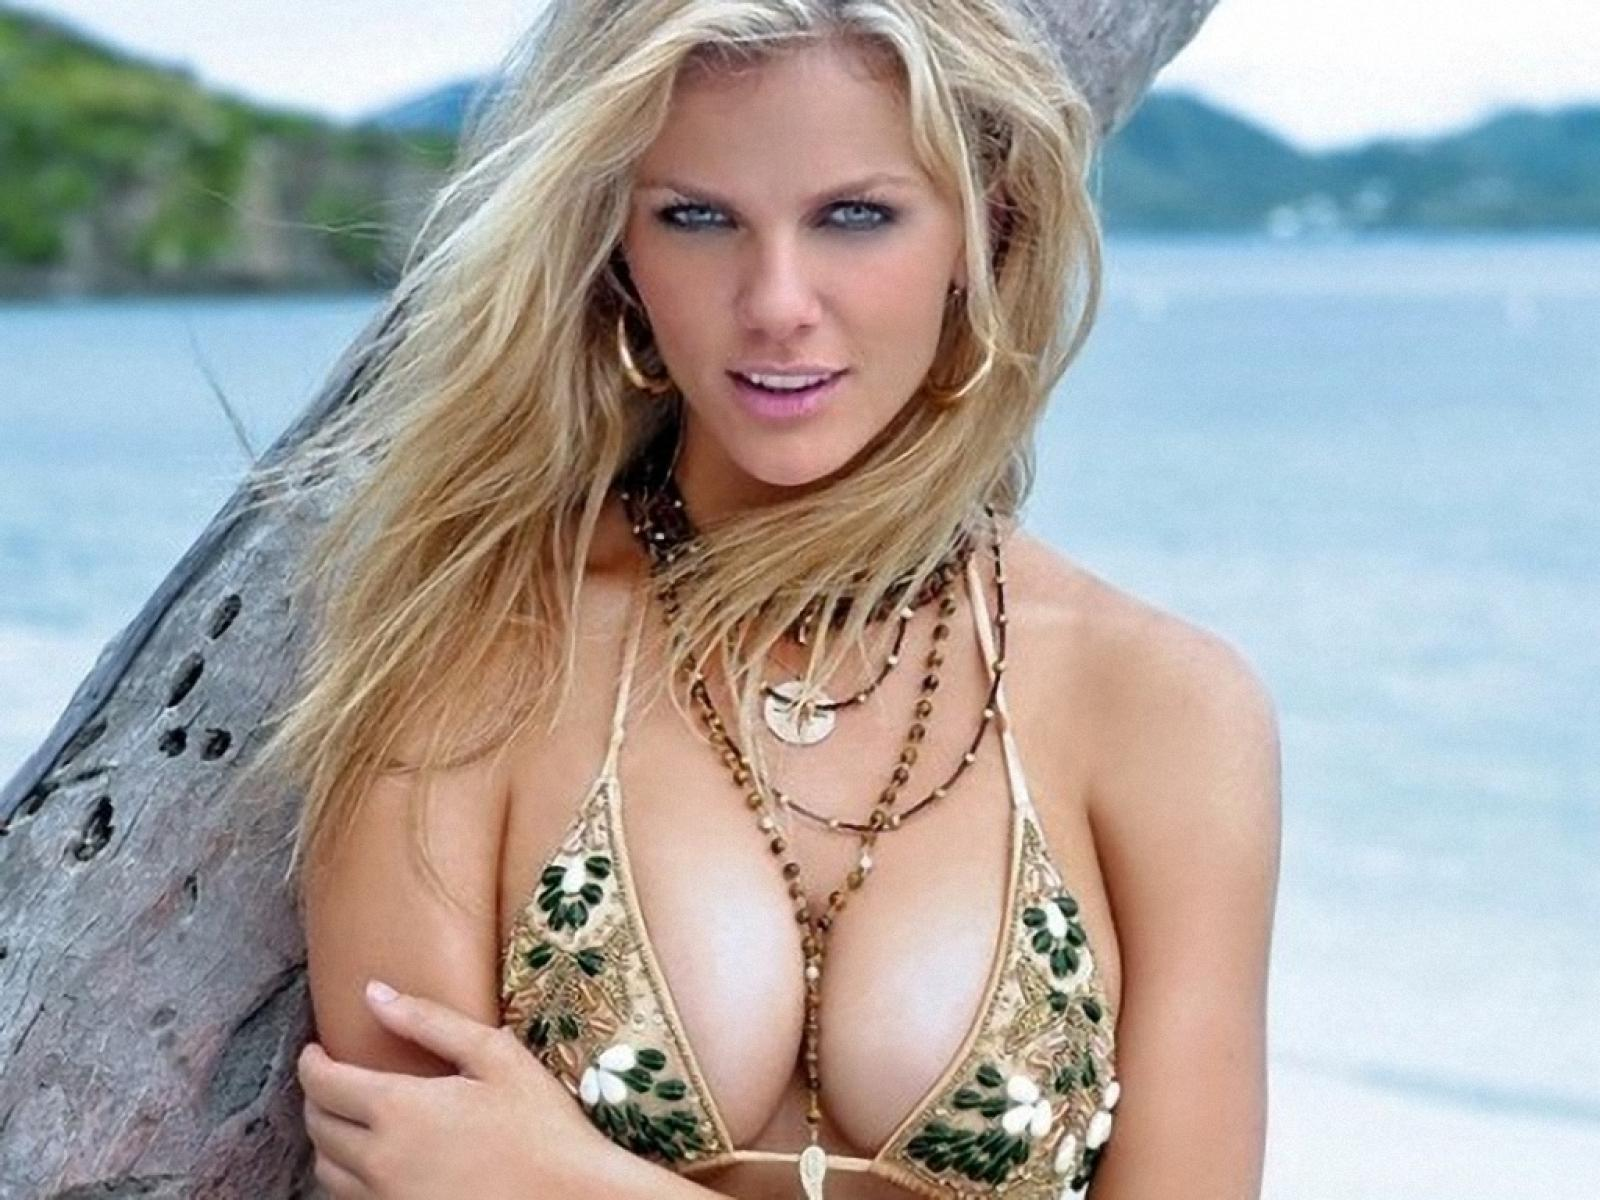 http://1.bp.blogspot.com/-FaohUut3vtk/UZvre8z8mGI/AAAAAAAAbg4/Z1KwjIi_Axs/s1600/Brooklyn+Decker+Wallpapers+hd+2013+(3).jpg